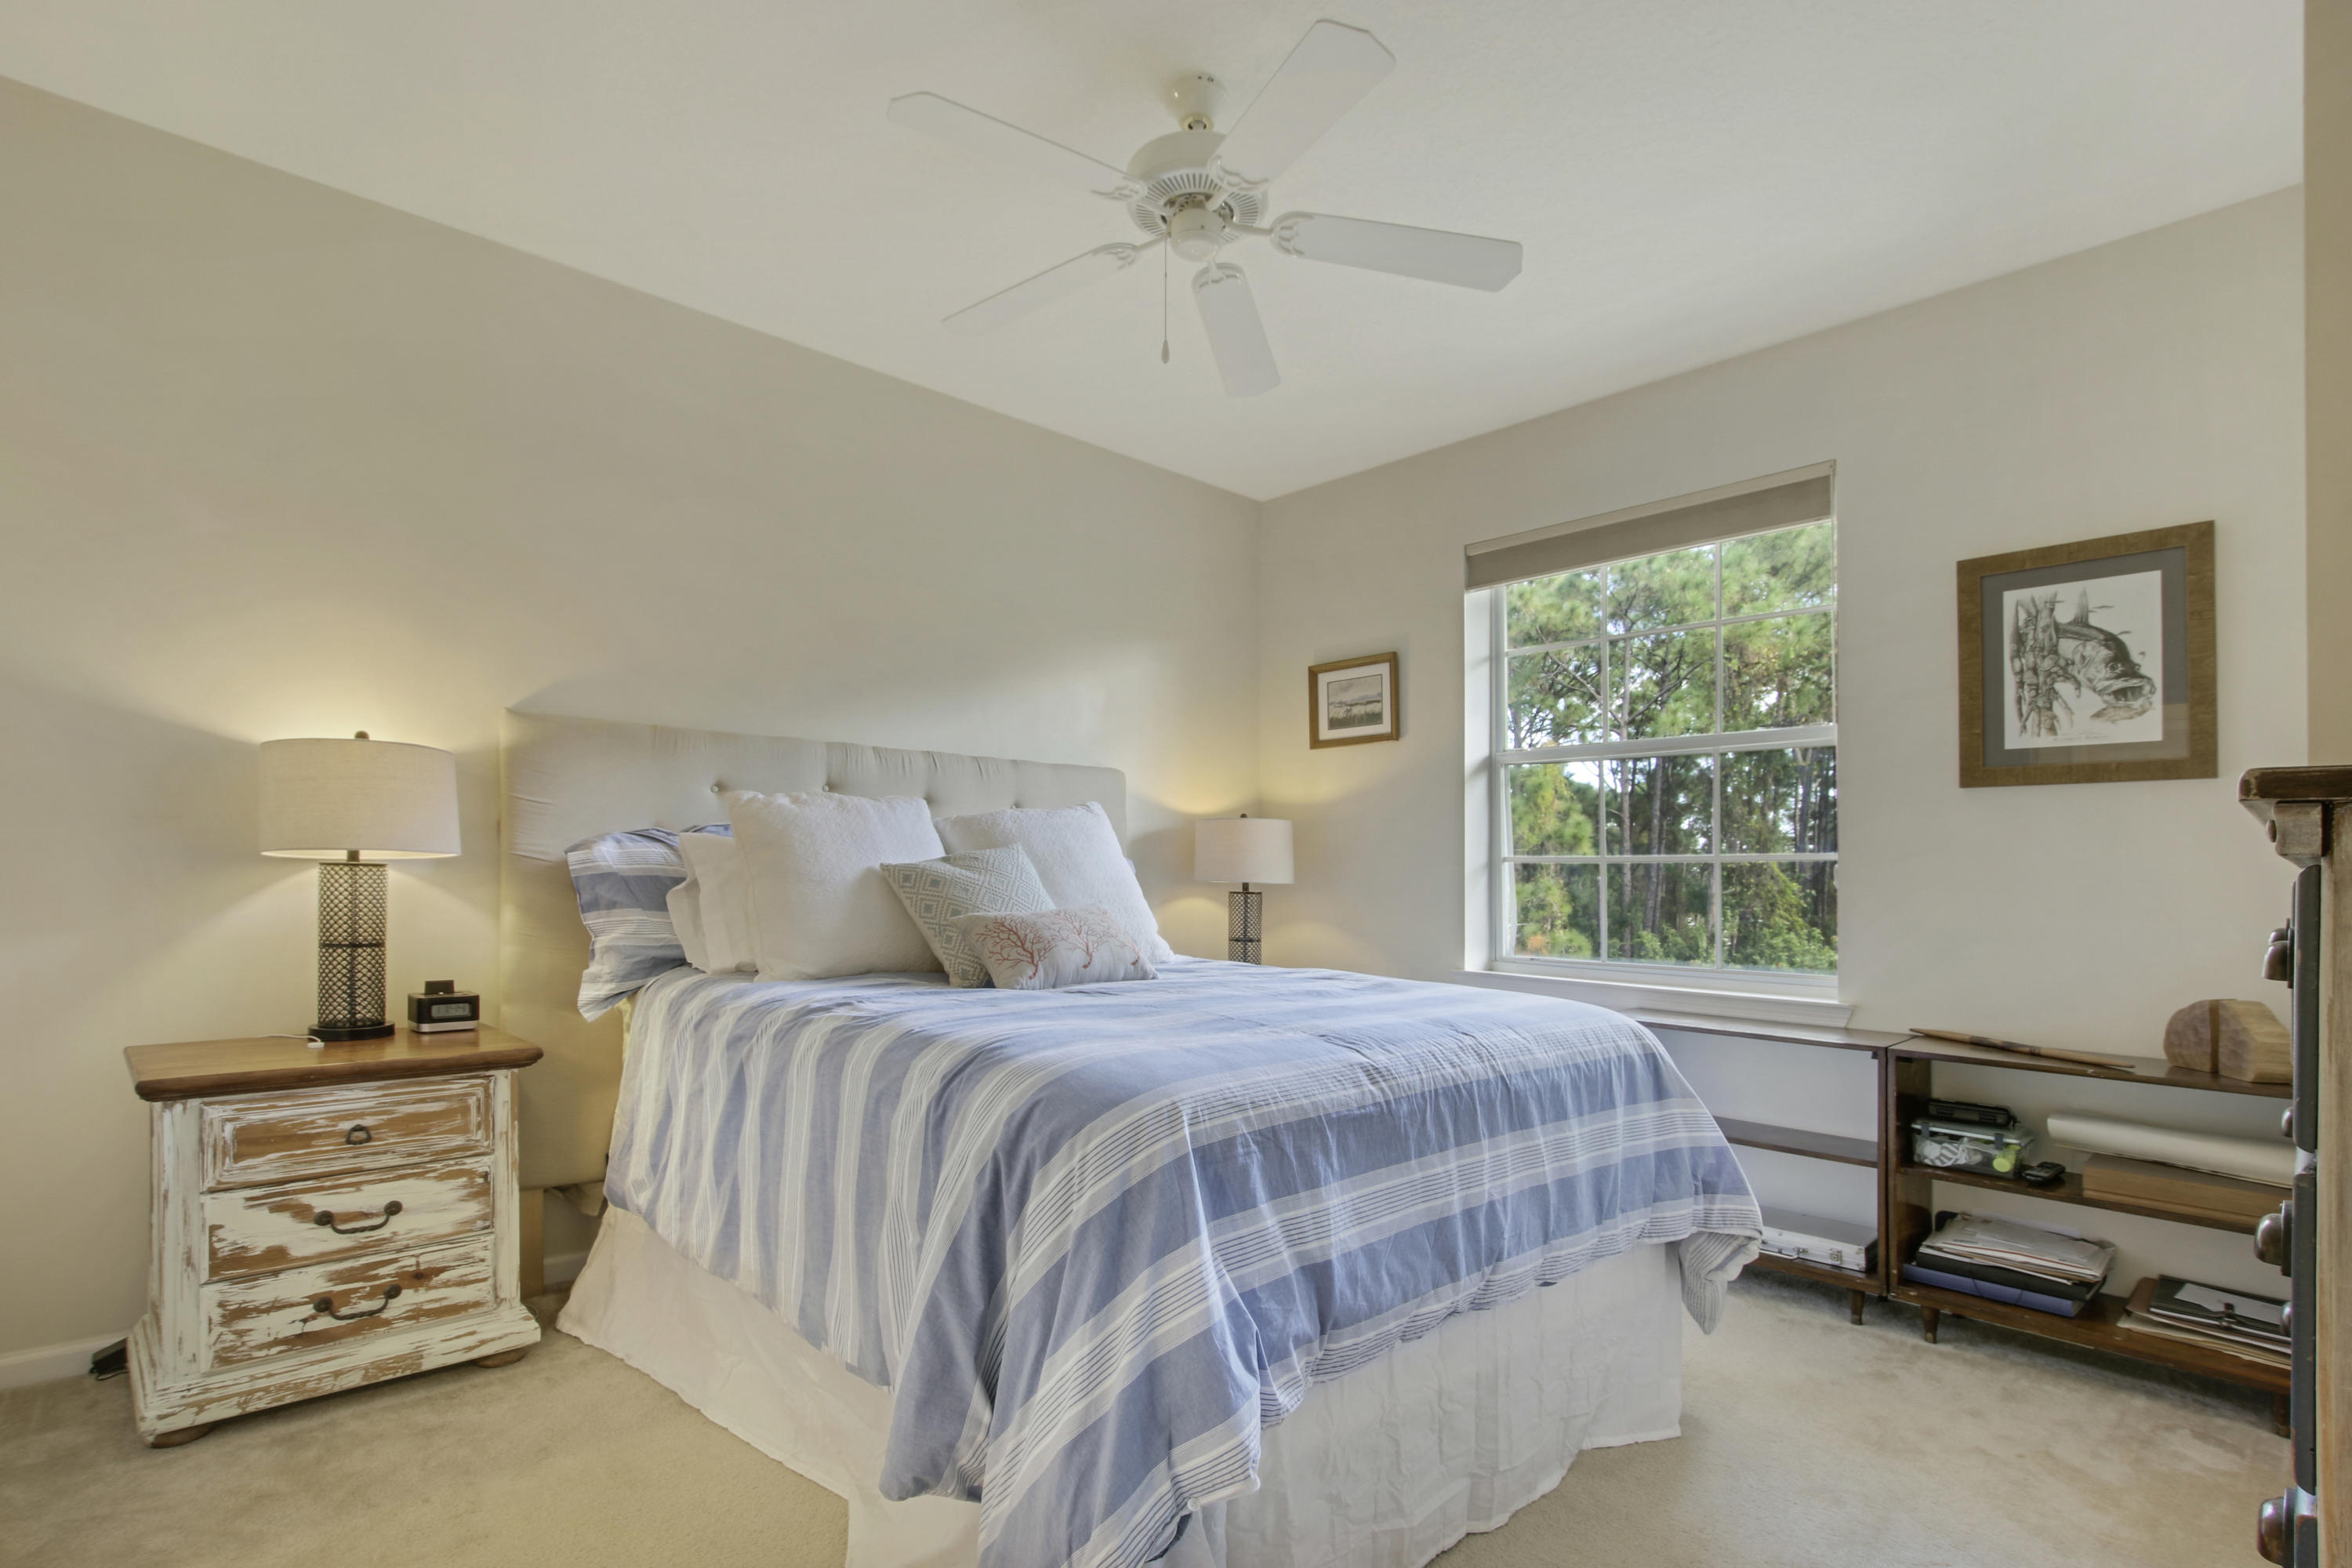 245 Murcia Drive 204  - Abacoa Homes - photo 10